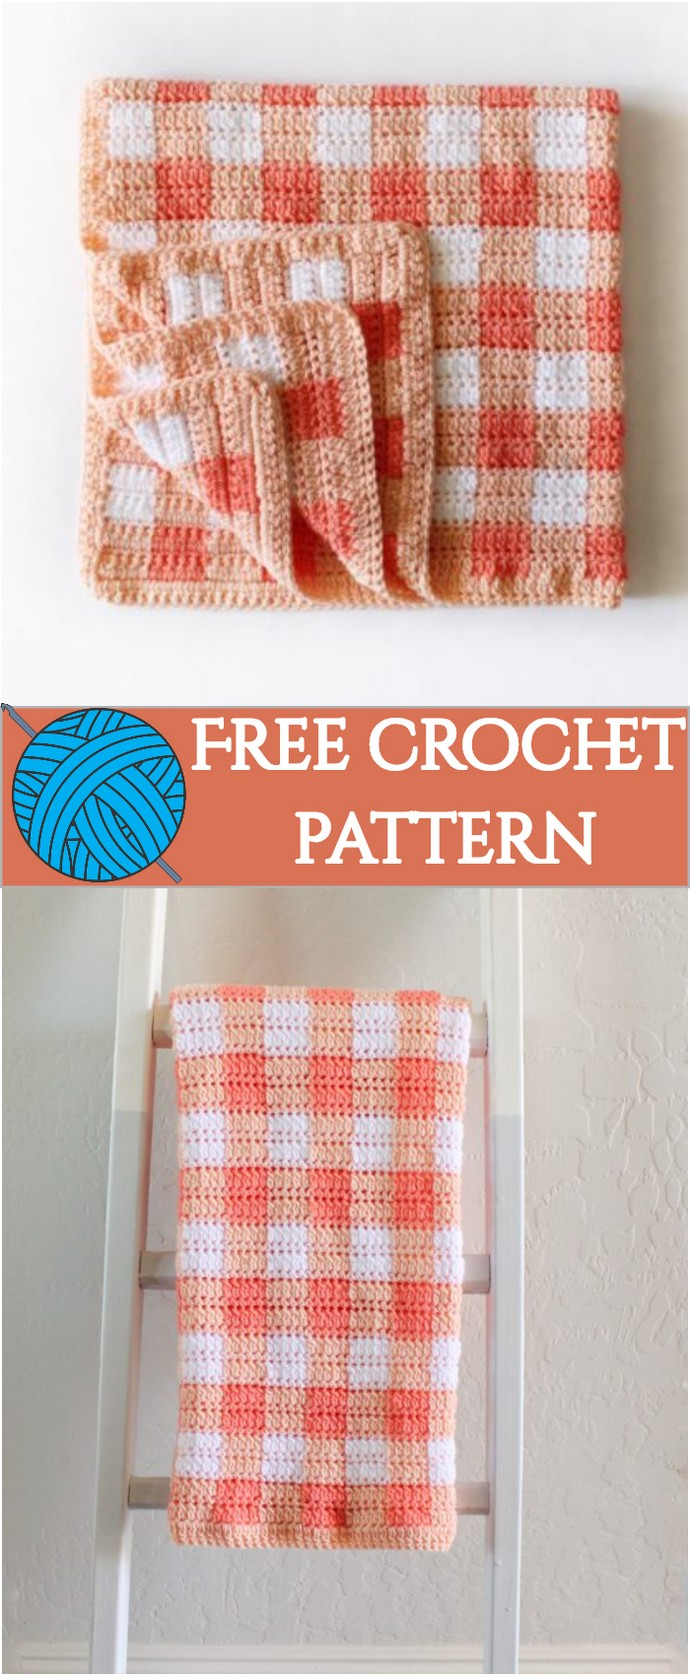 Free Crochet Cluster Stitch Gingham Blanket: